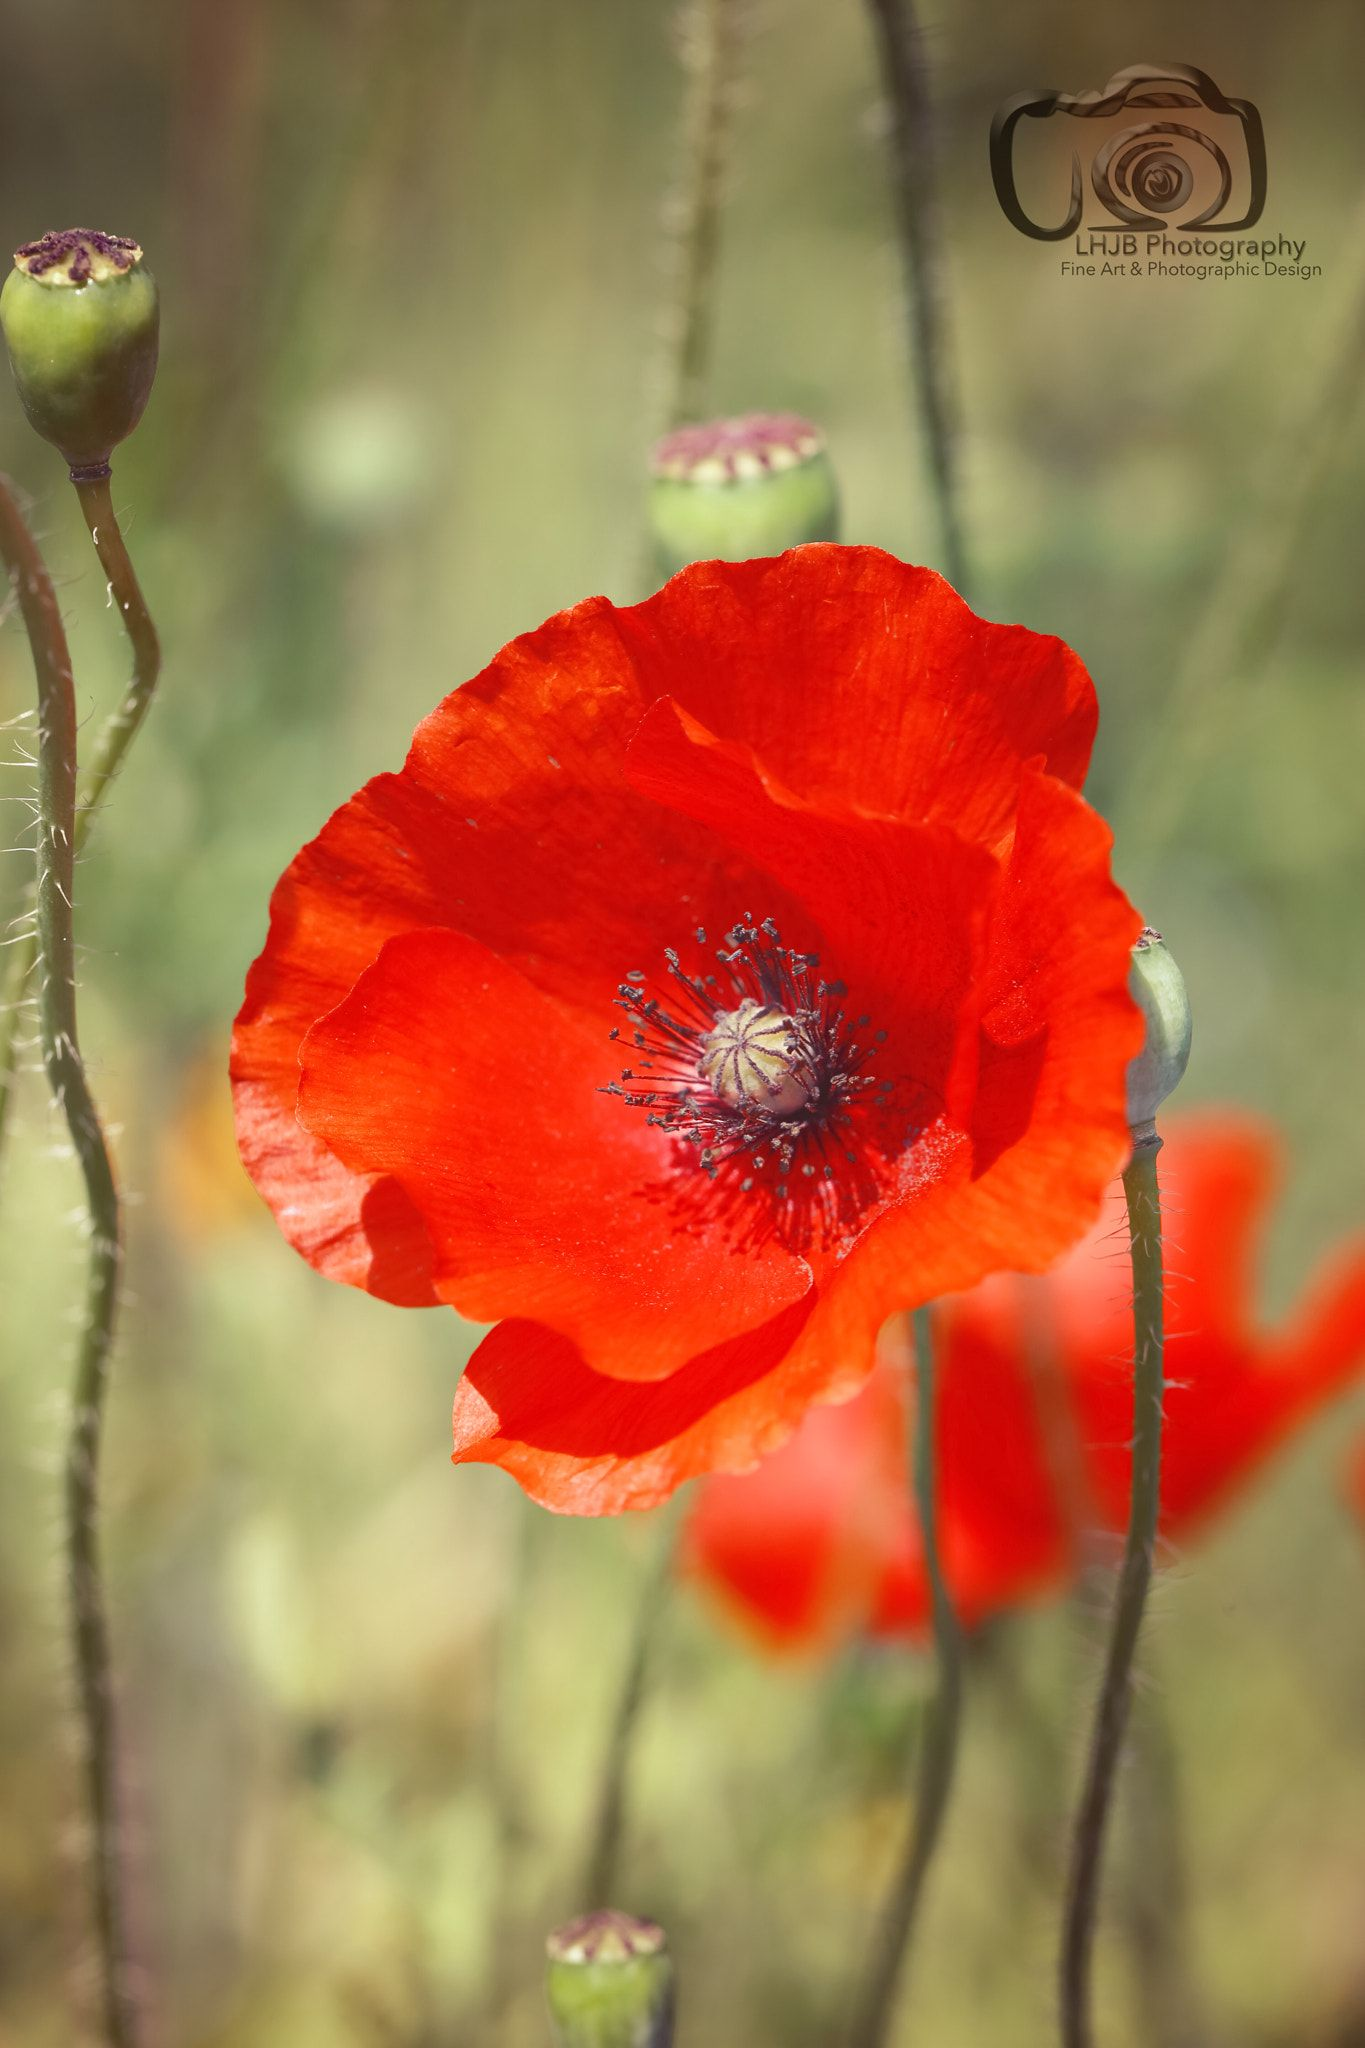 Just A Poppy A Bright Red Poppy Blooming By Lhjb Photography